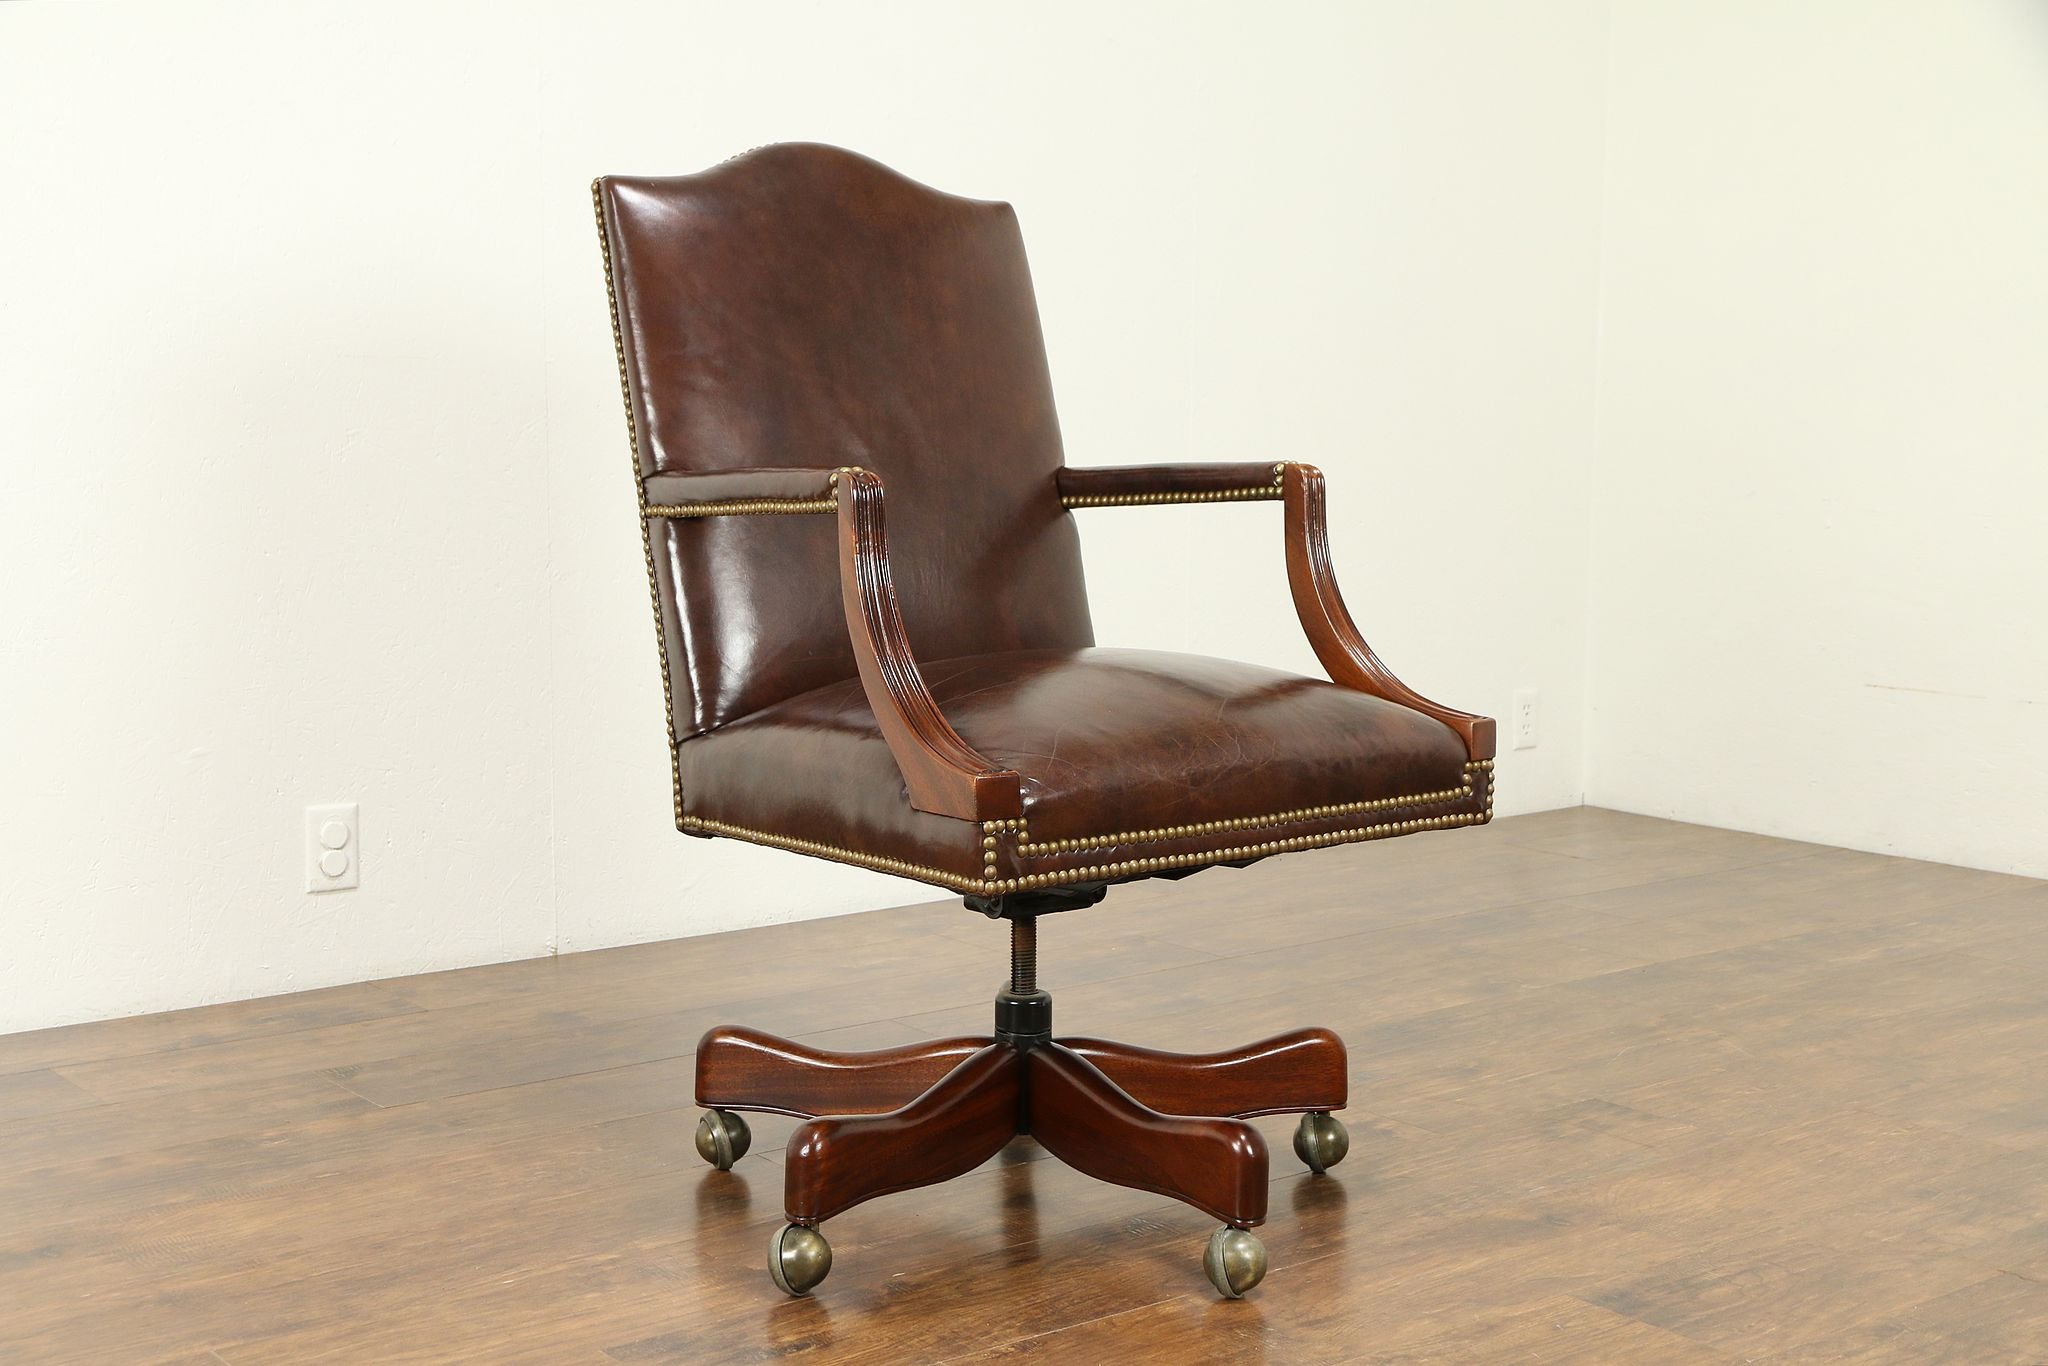 info for d0f3d 48944 Leather & Mahogany Swivel Vintage Adjustable Desk Chair, Signed Hickory  #31127